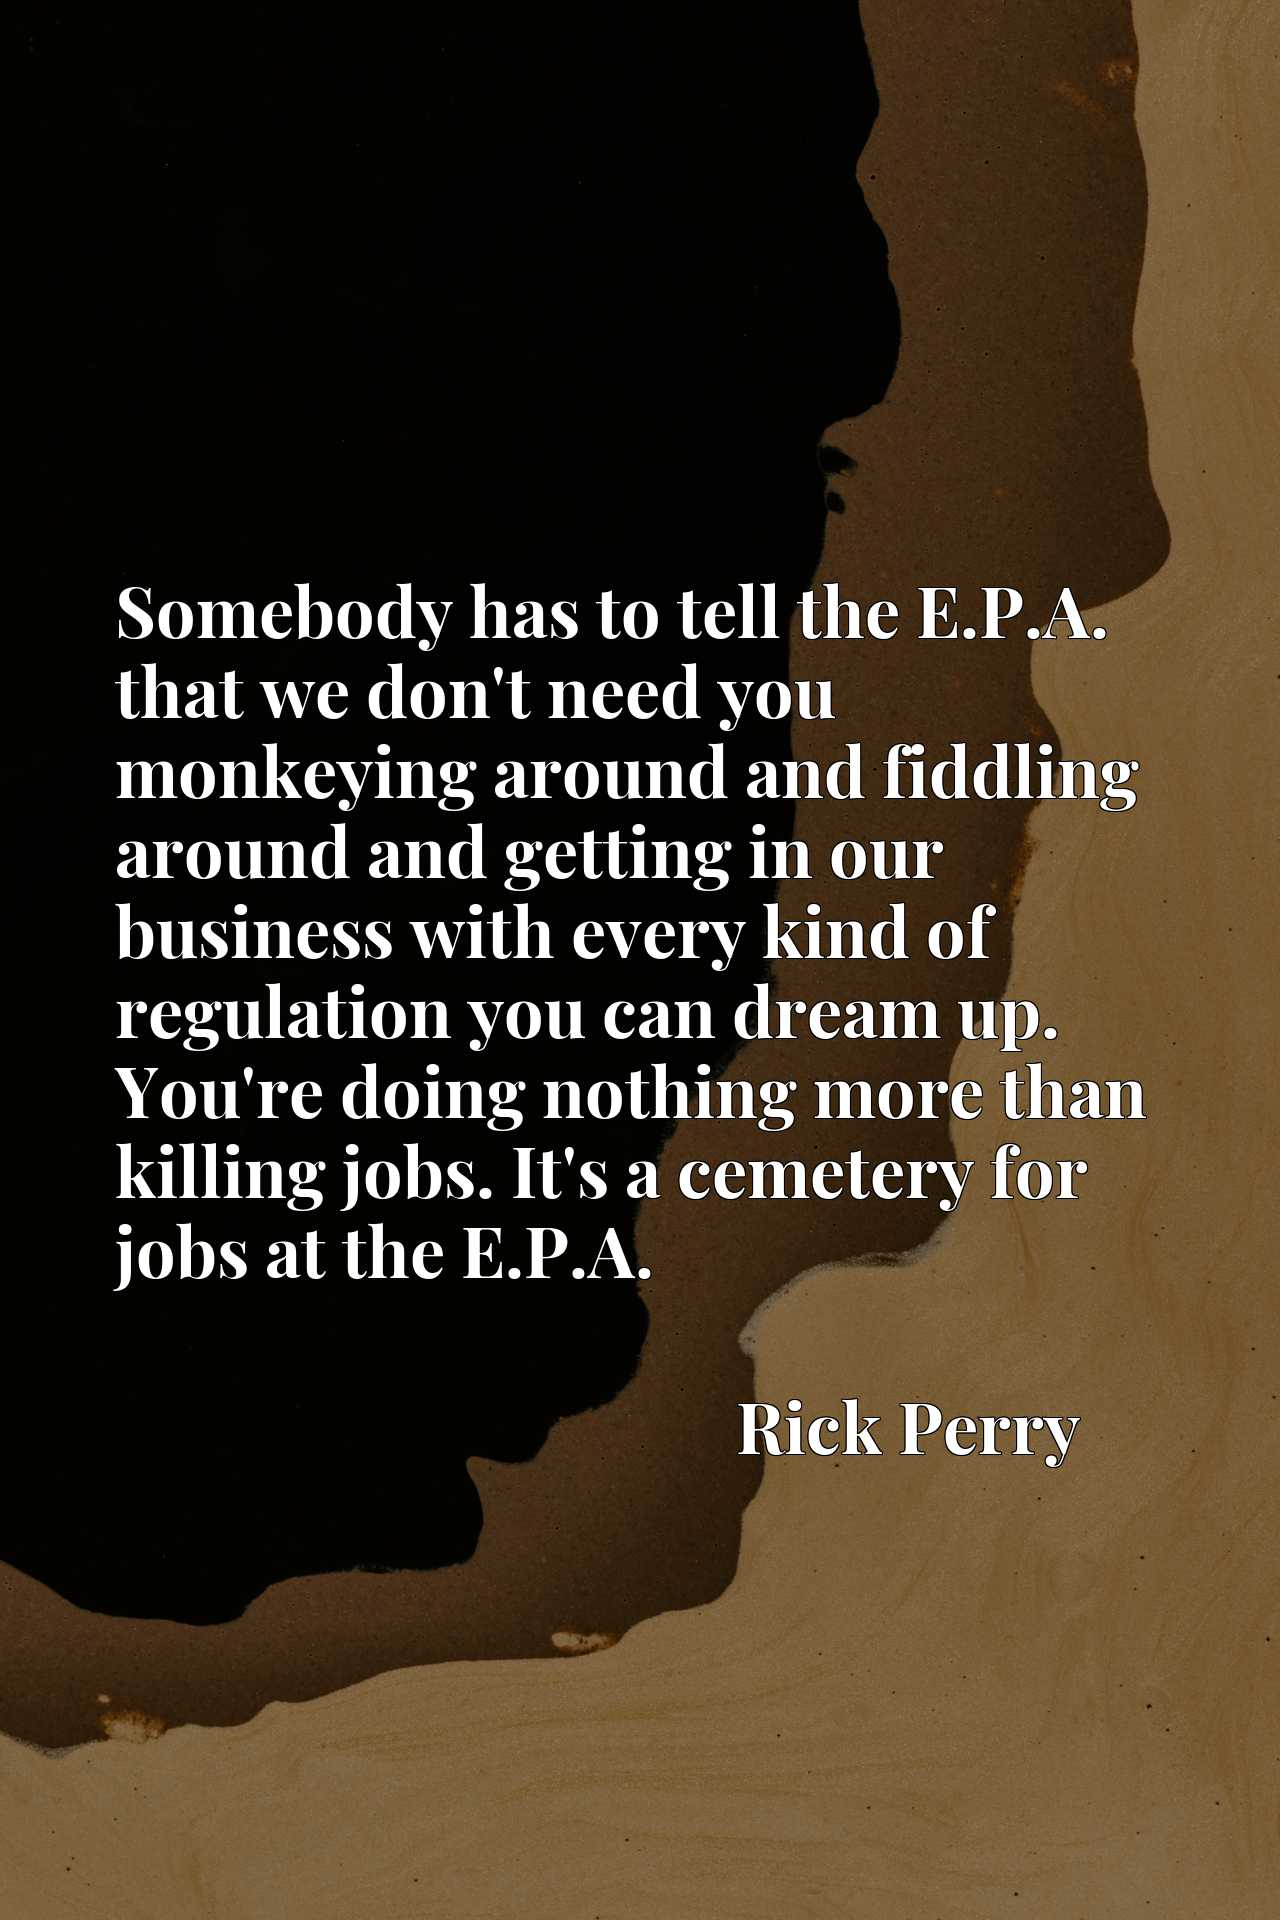 Somebody has to tell the E.P.A. that we don't need you monkeying around and fiddling around and getting in our business with every kind of regulation you can dream up. You're doing nothing more than killing jobs. It's a cemetery for jobs at the E.P.A.